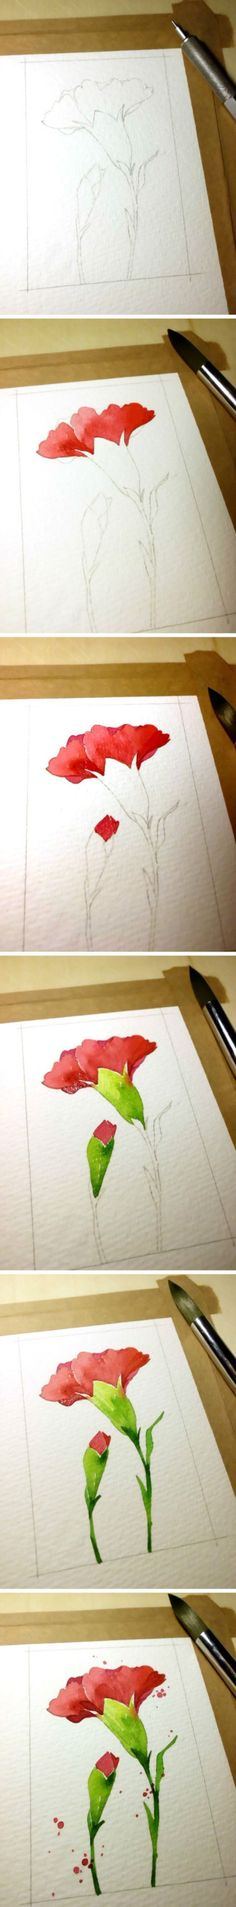 20 Delicate Colorful Watercolor Flower Painting Tutorials In Images-HOMESTHETICS (12)